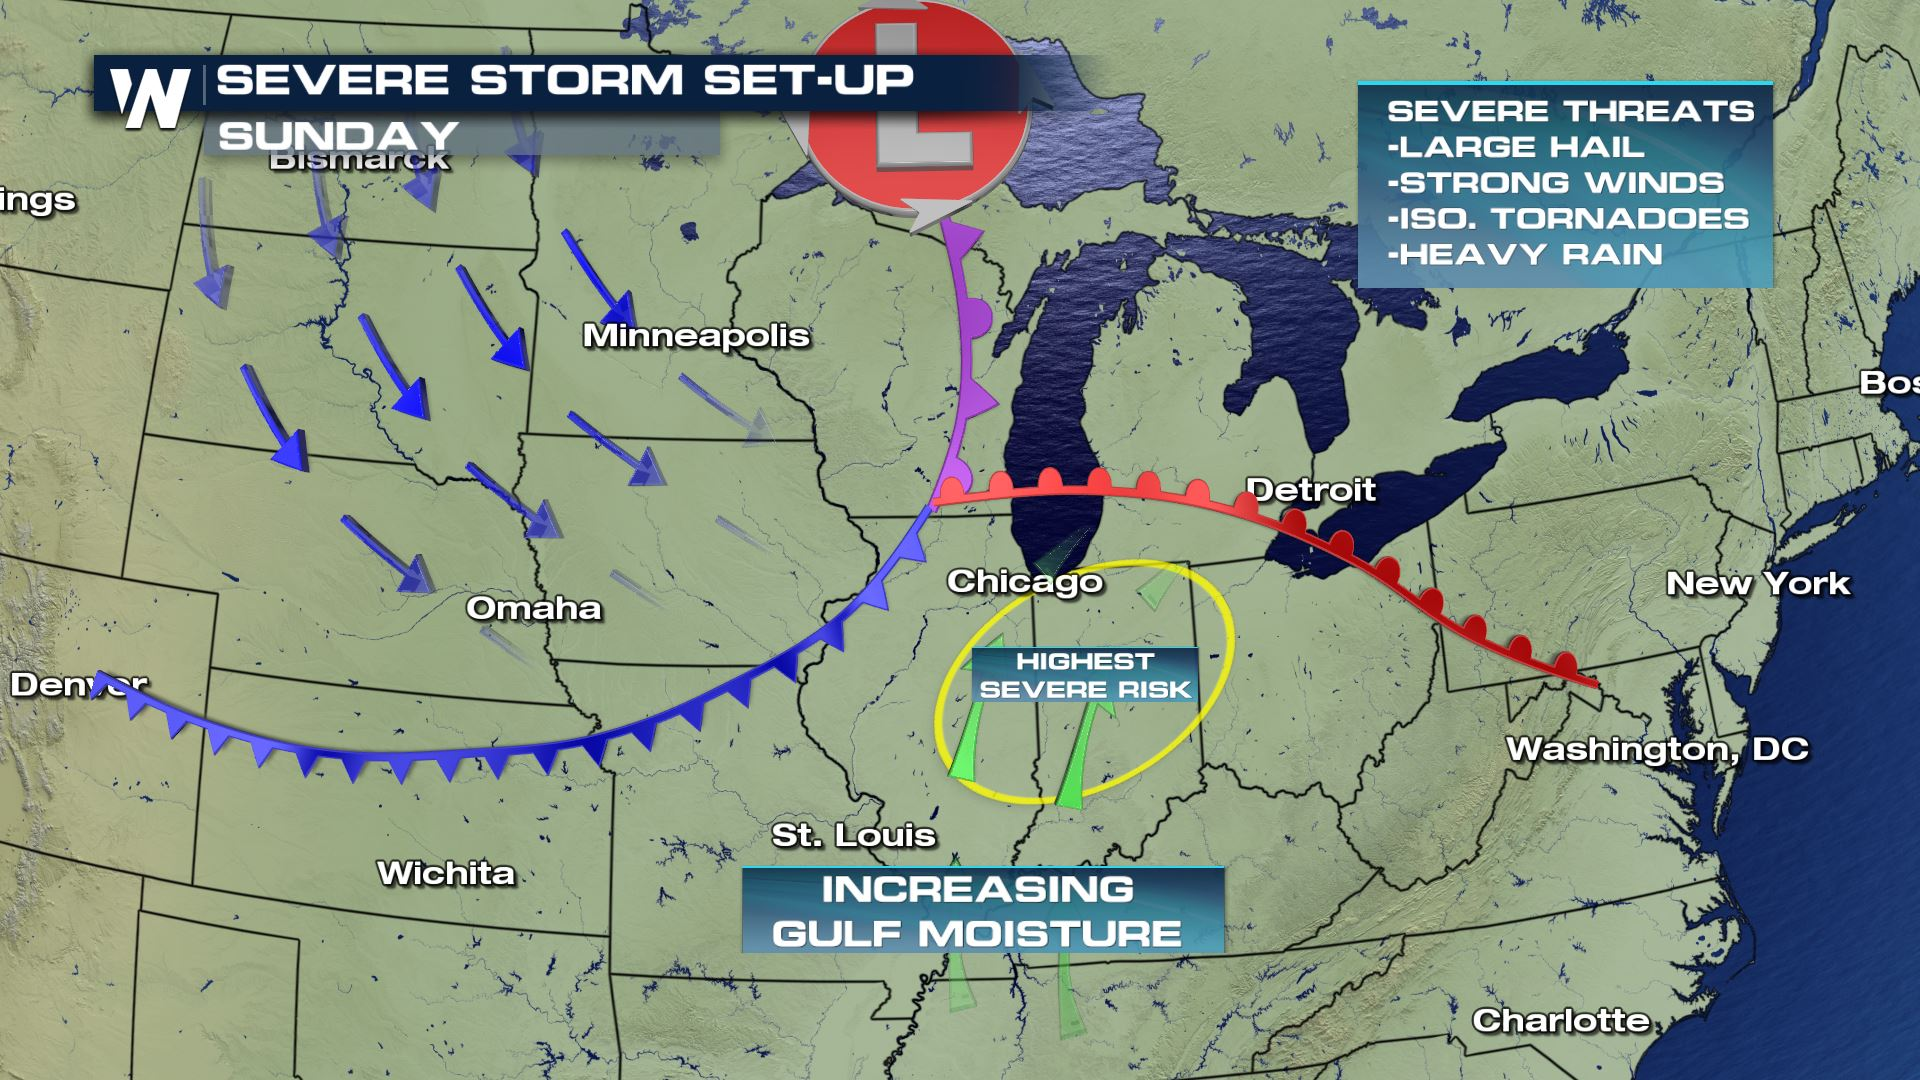 Severe Weather For The Upper Great Lakes And Ohio Valley On Sunday